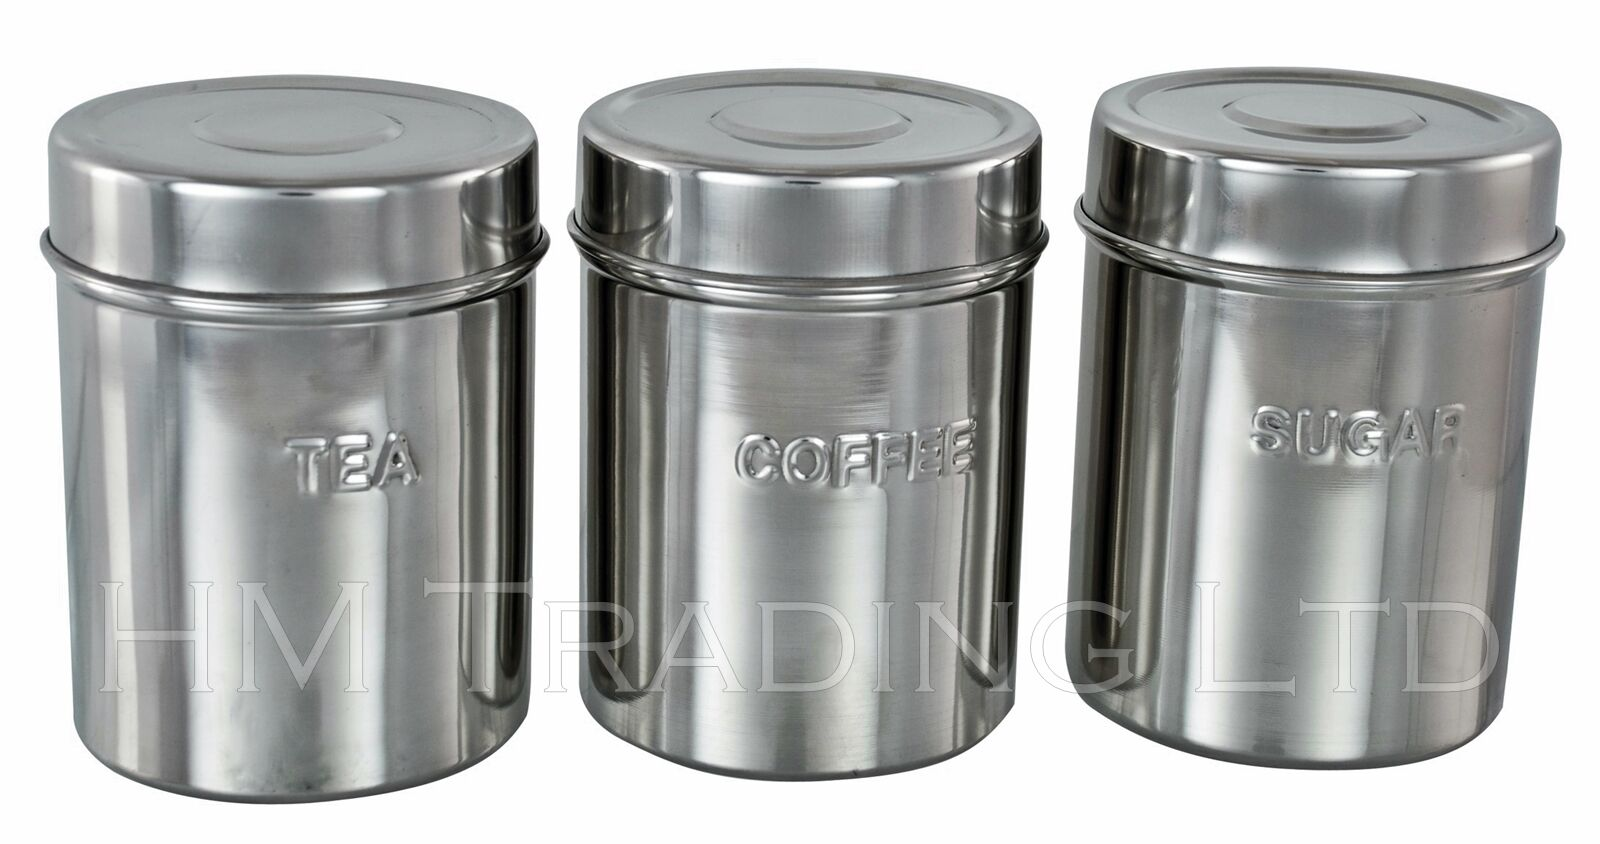 3pc Stainless Steel Canister Jars Tea Sugar Coffee Kitchen